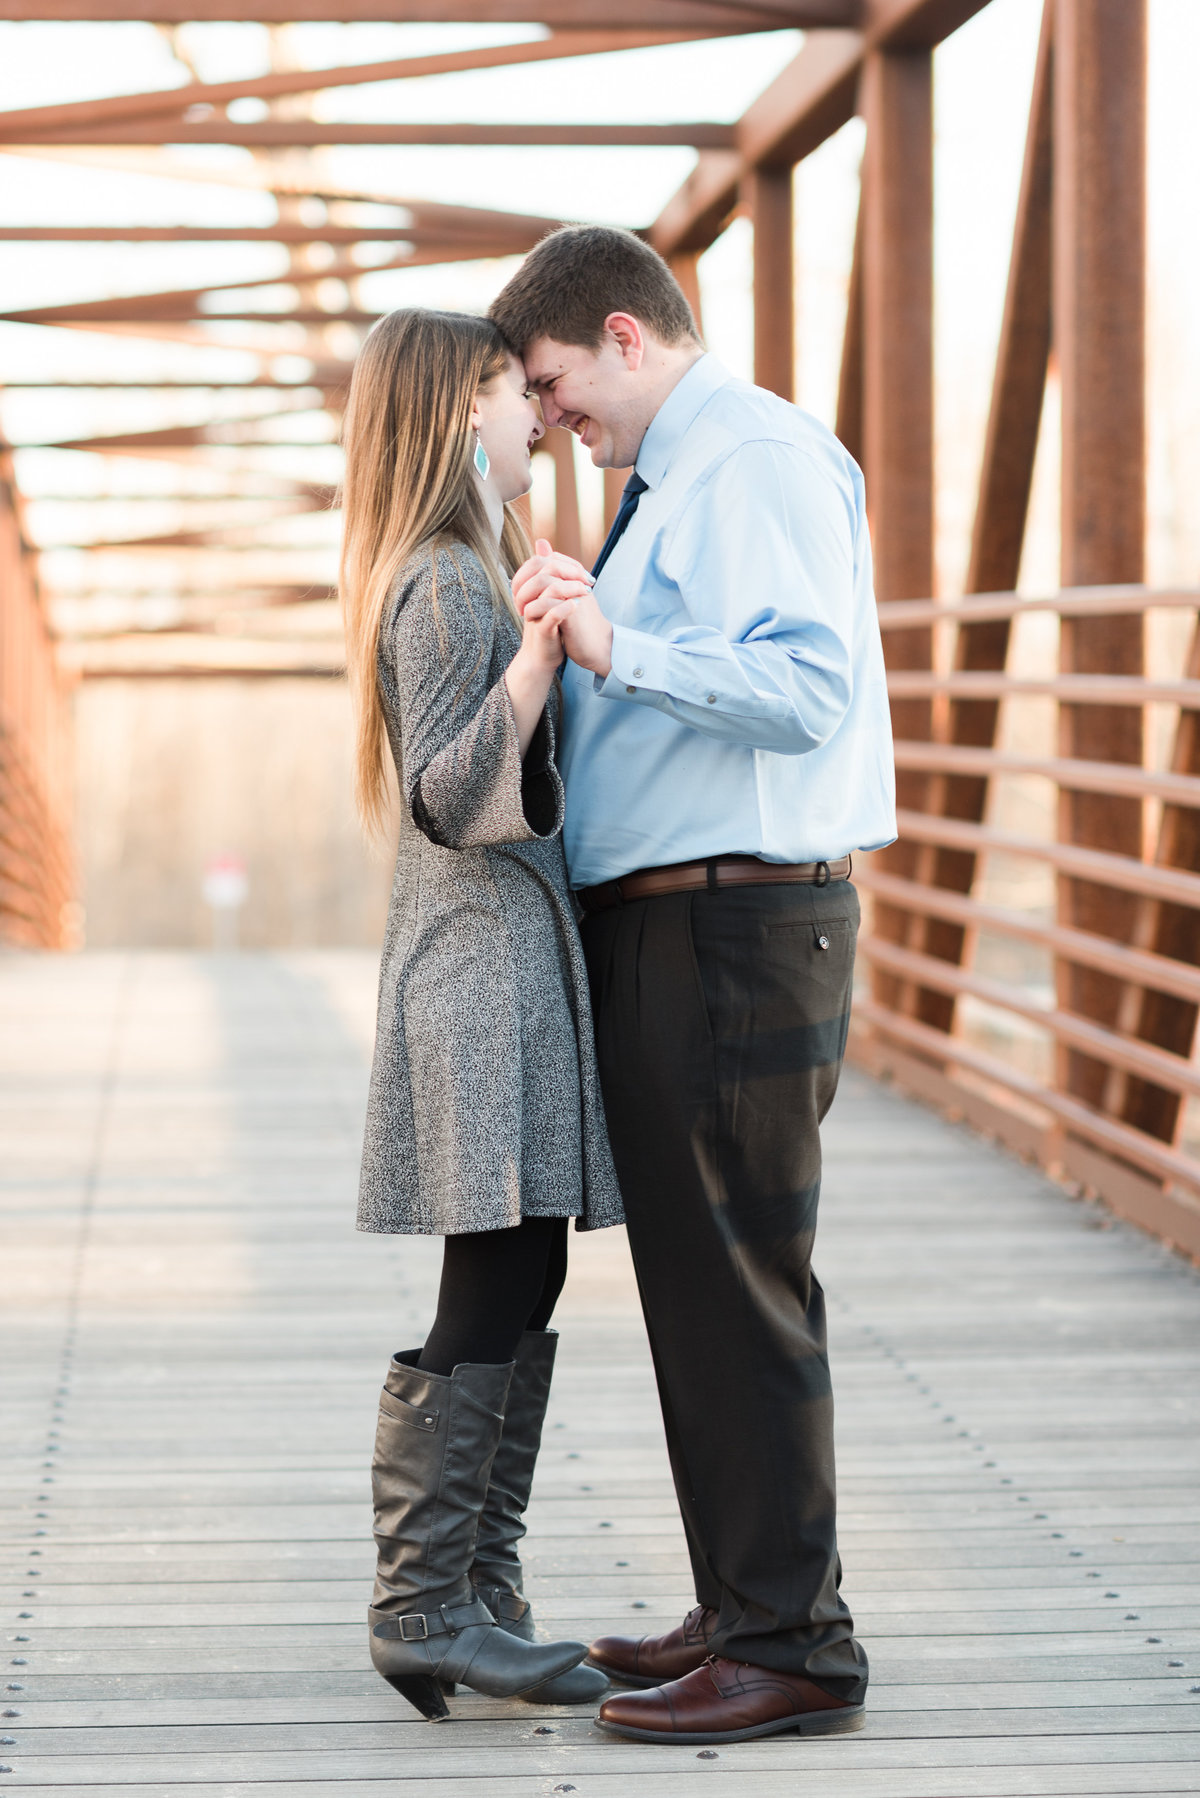 20190302 - Jannae and Forest Engagement Session 198 - A Winter Reid Merrill Park Engagement Session